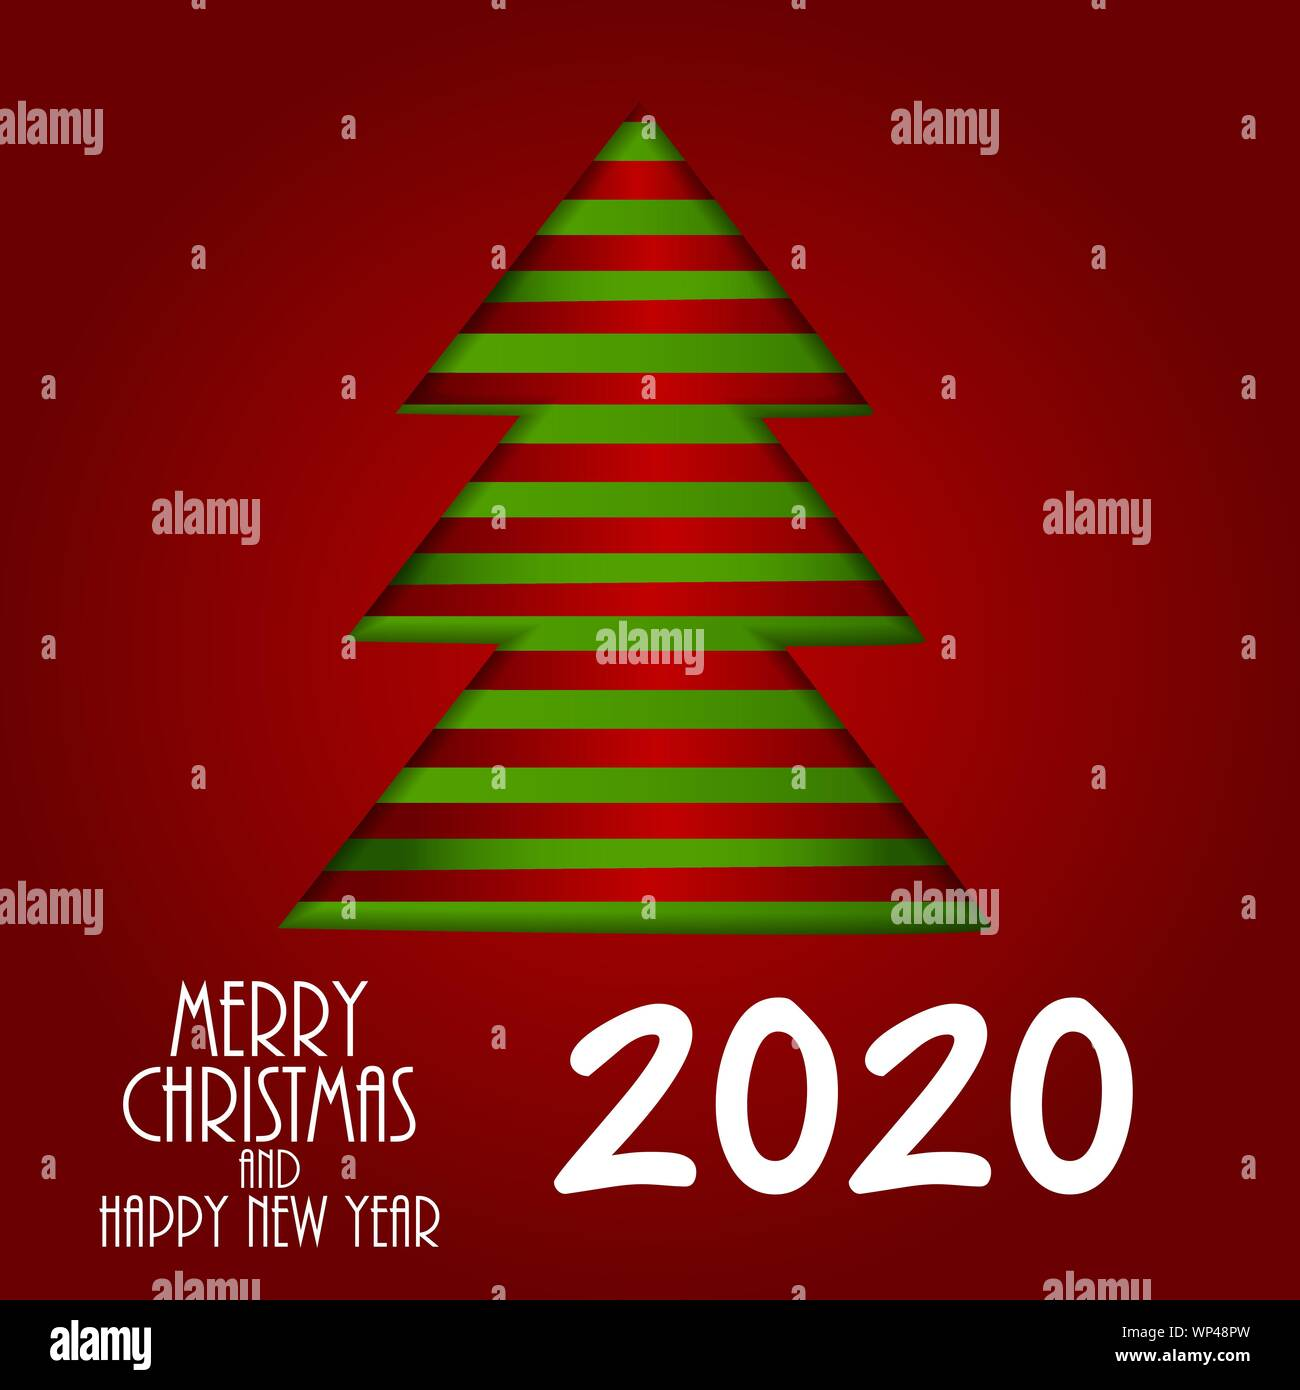 Merry Christmas Images 2020.2020 New Year And Merry Christmas Background Vector